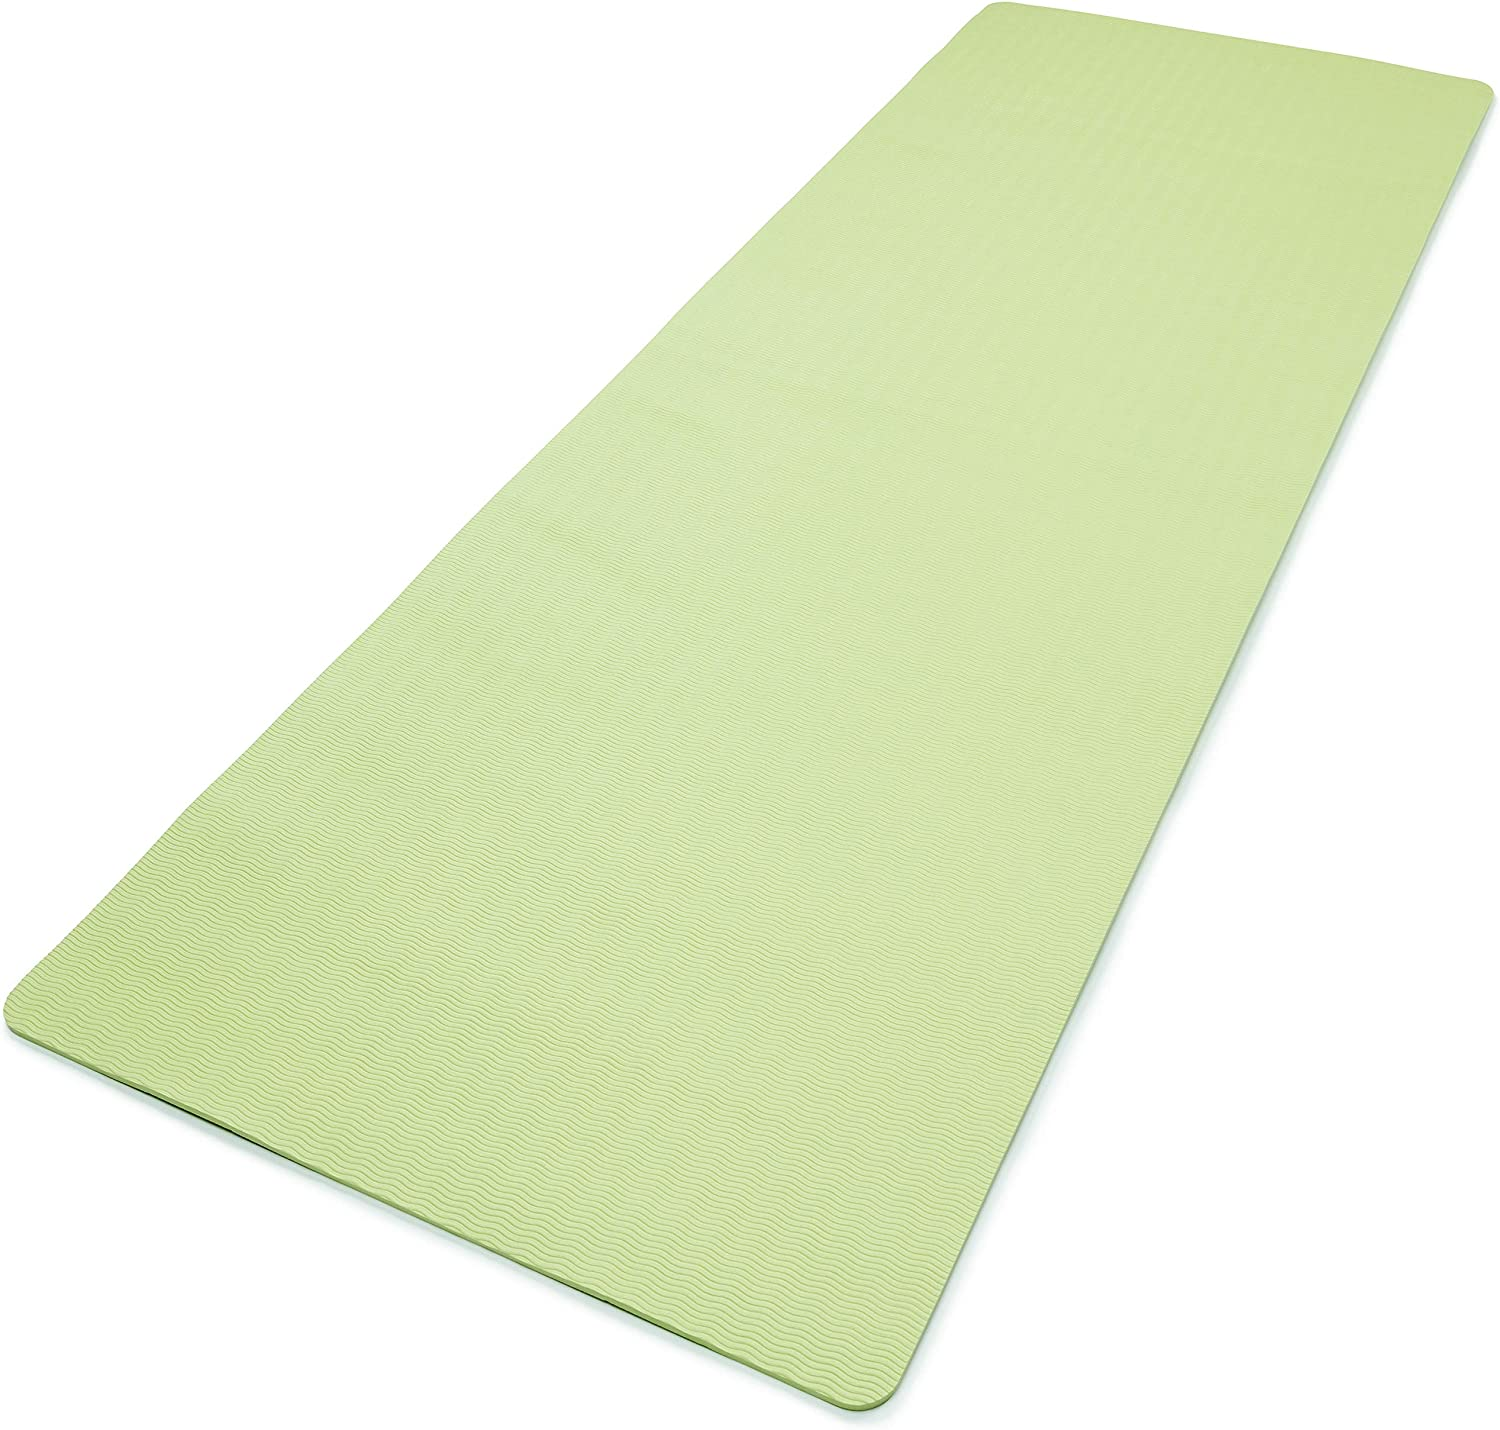 Amazon.com : adidas Yoga Mat- 8mm - Aero Green : Sports ...